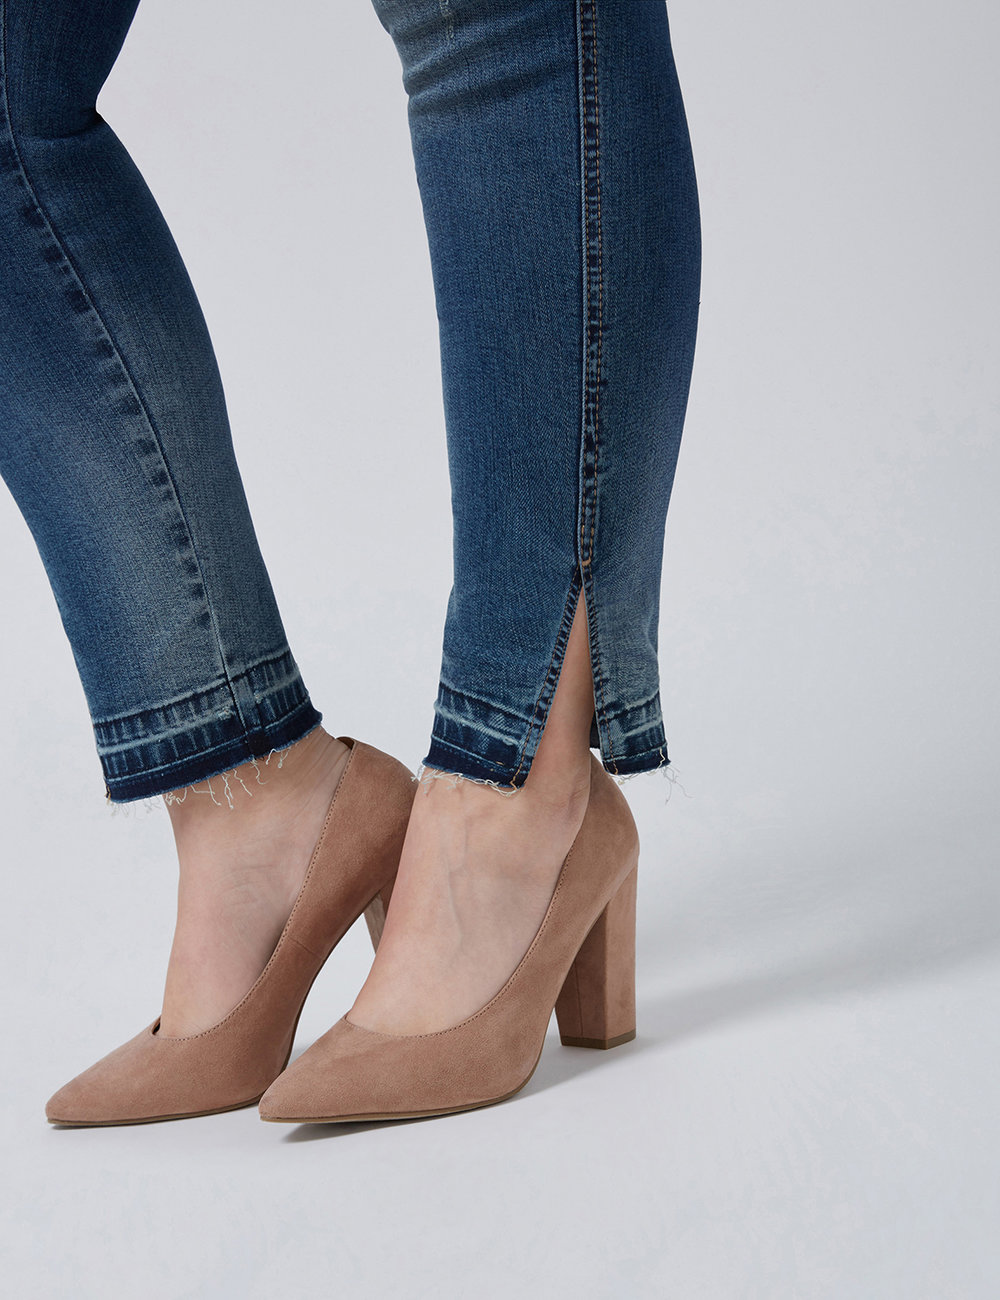 retouched ankle shot of split cuff jeans with unfinished hem